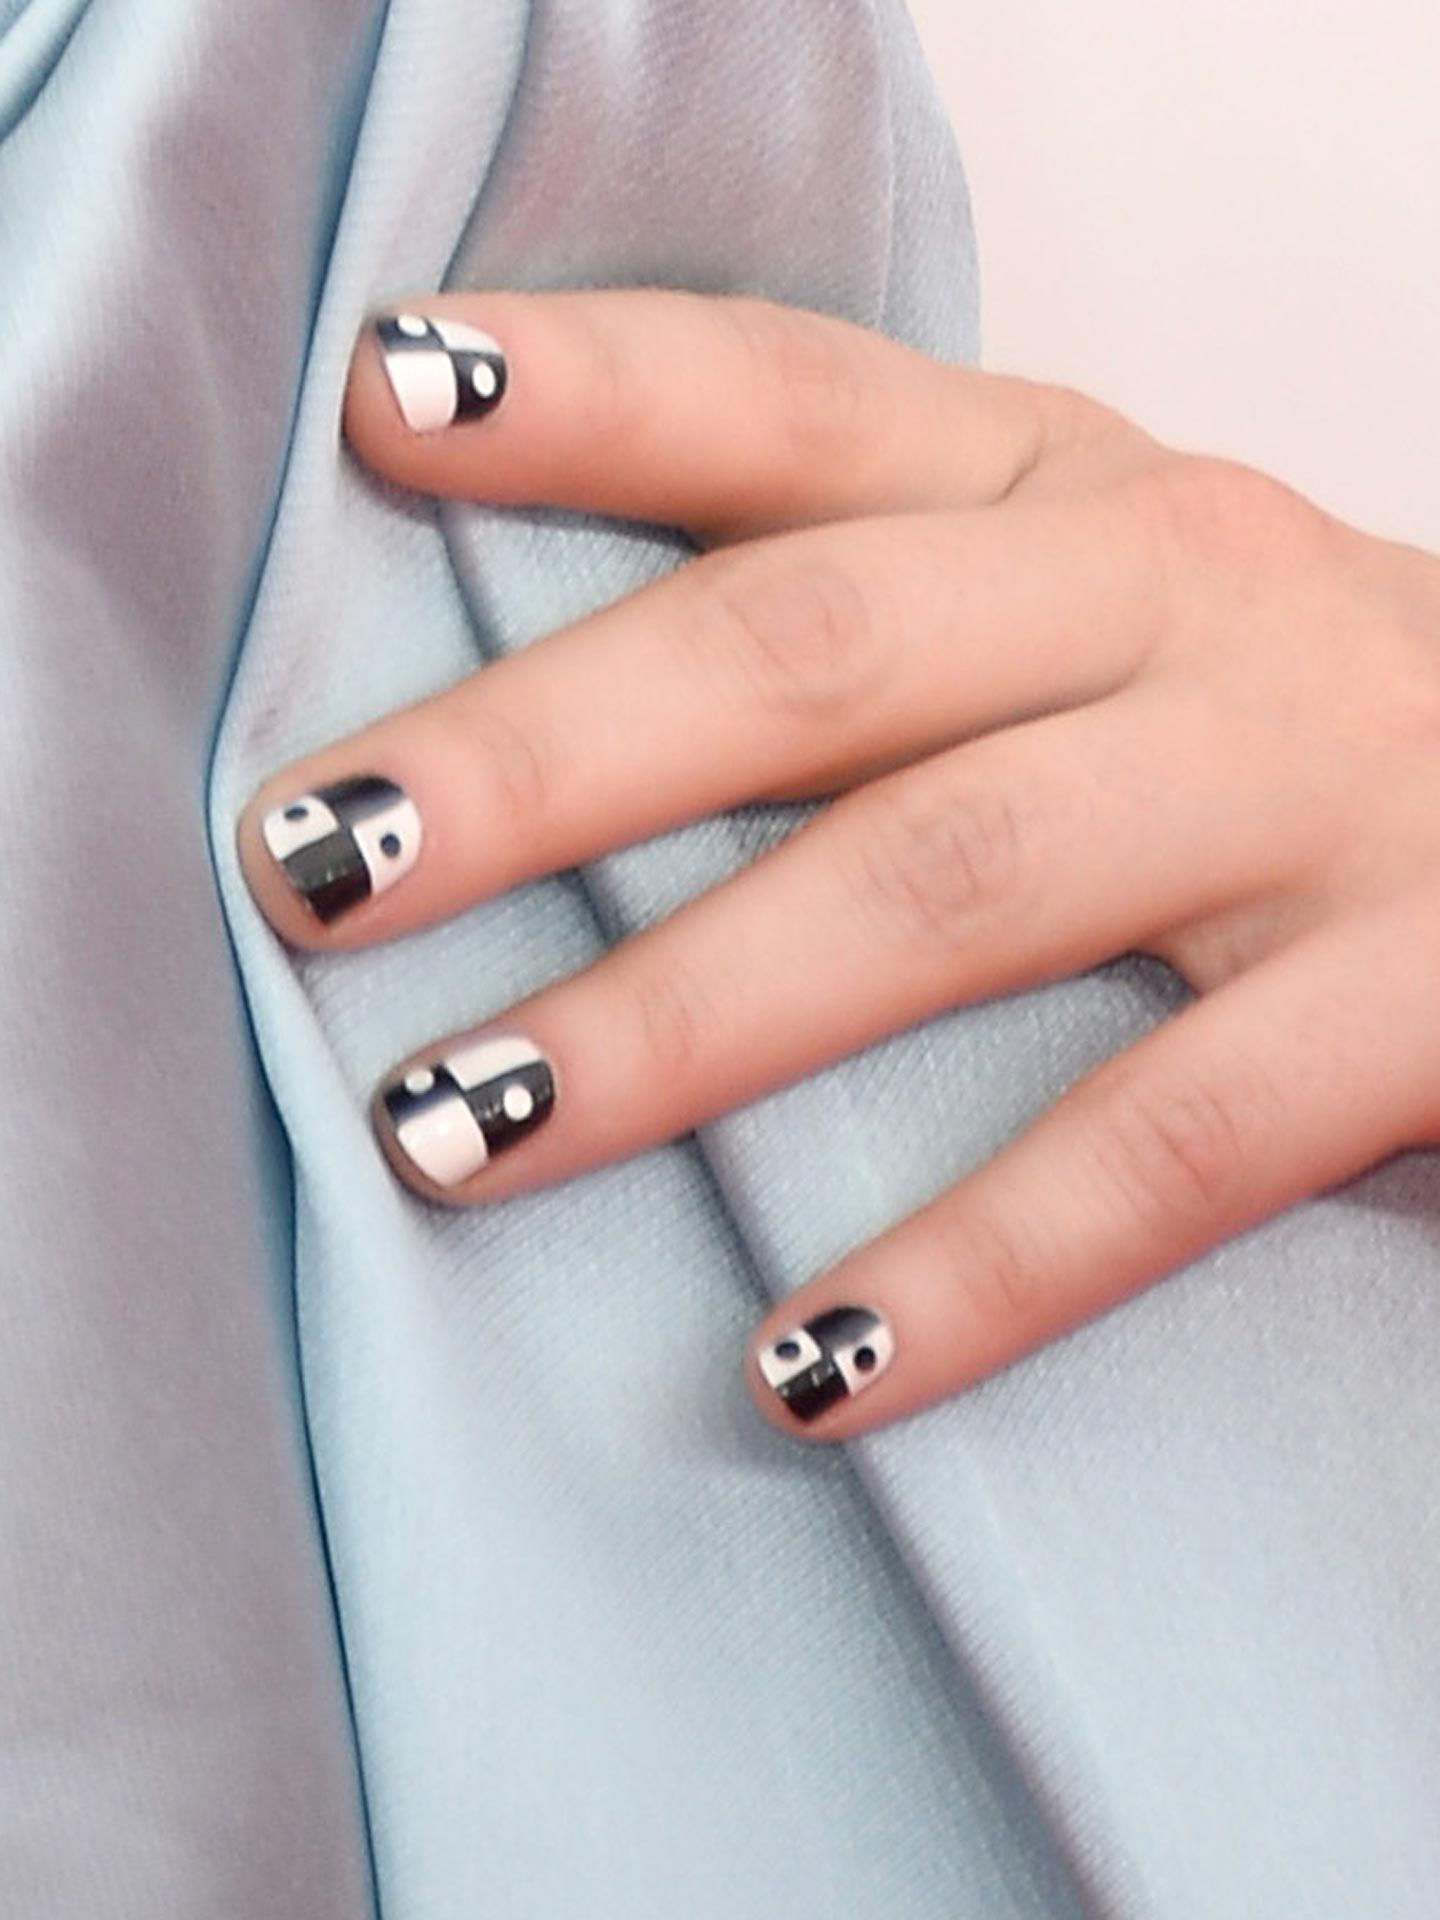 100+ Best Nail Designs of 2018 - Latest Nail Art Trends & Ideas to Try